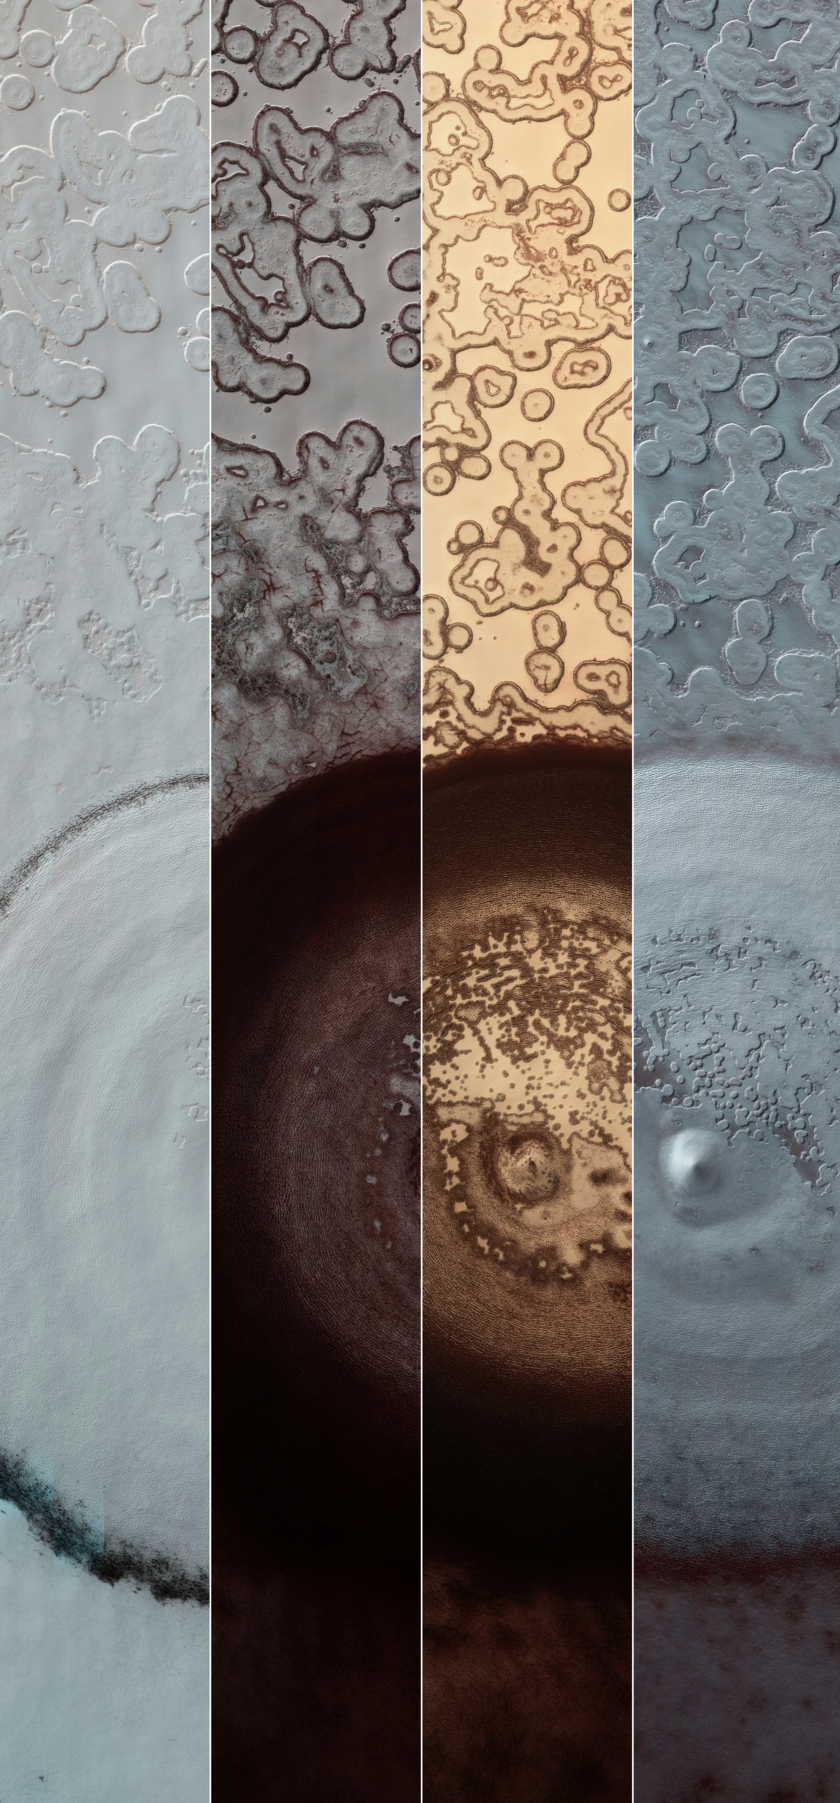 Mysterious Feature Near the Martian South Pole